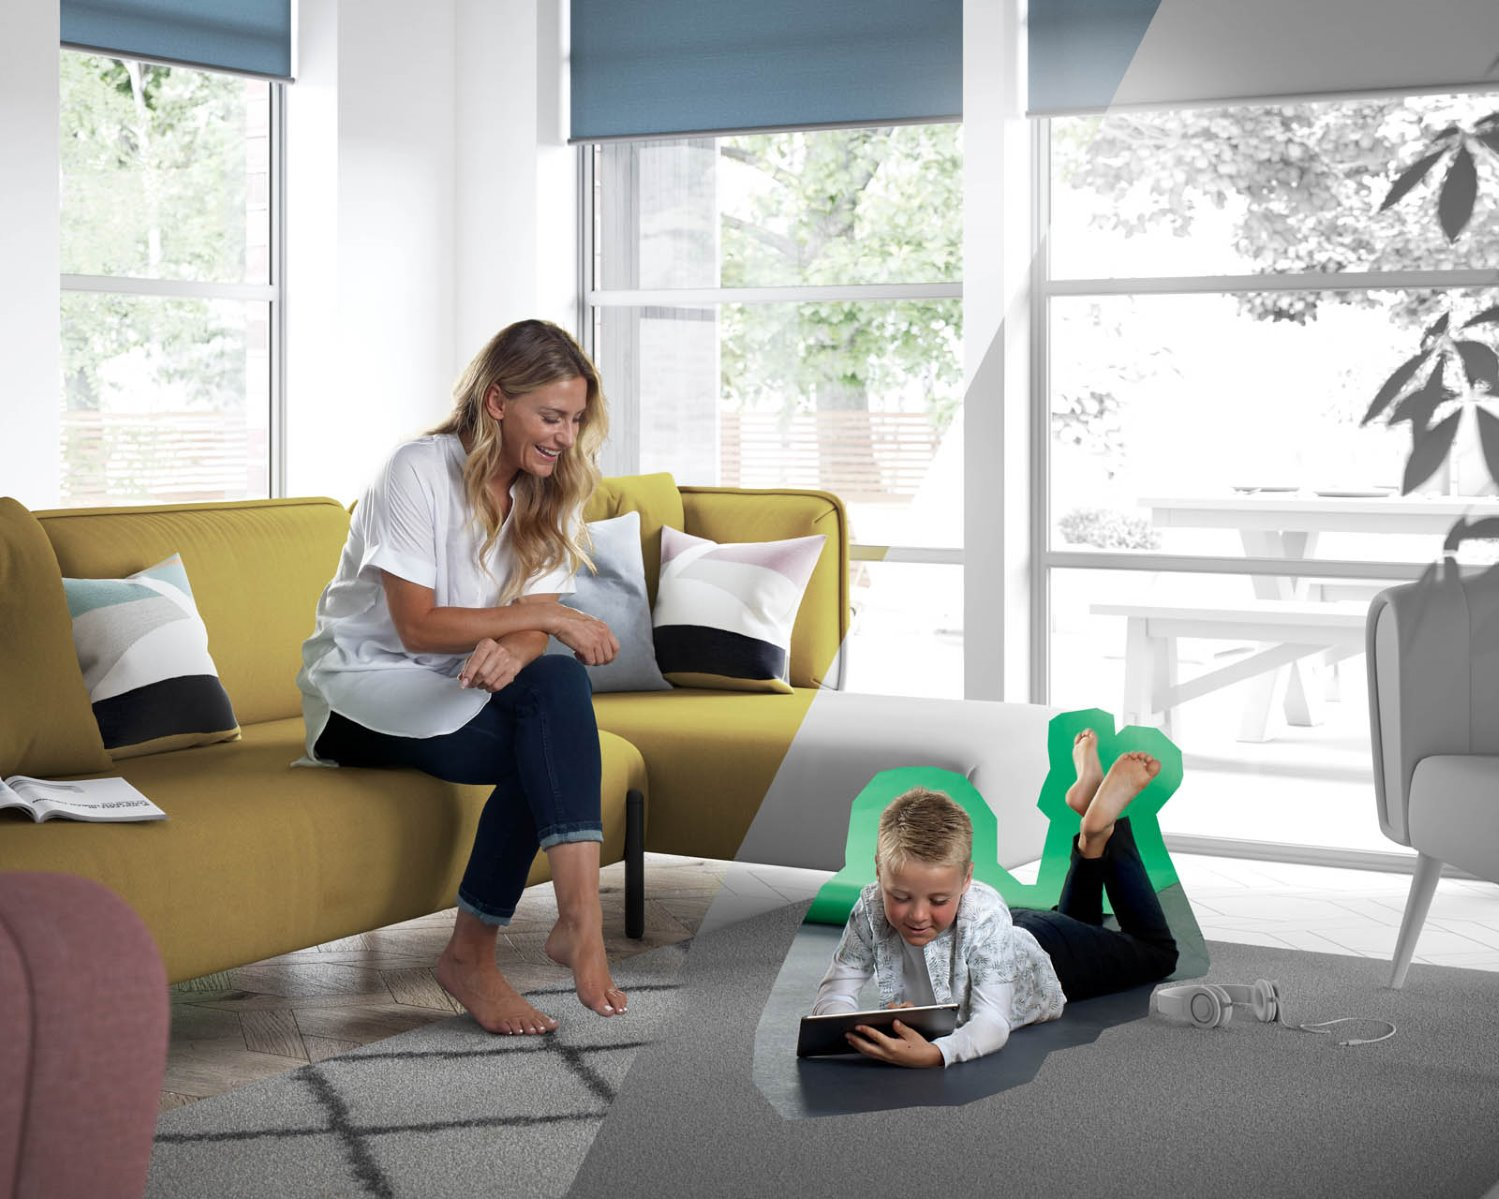 family living room editorial CGI